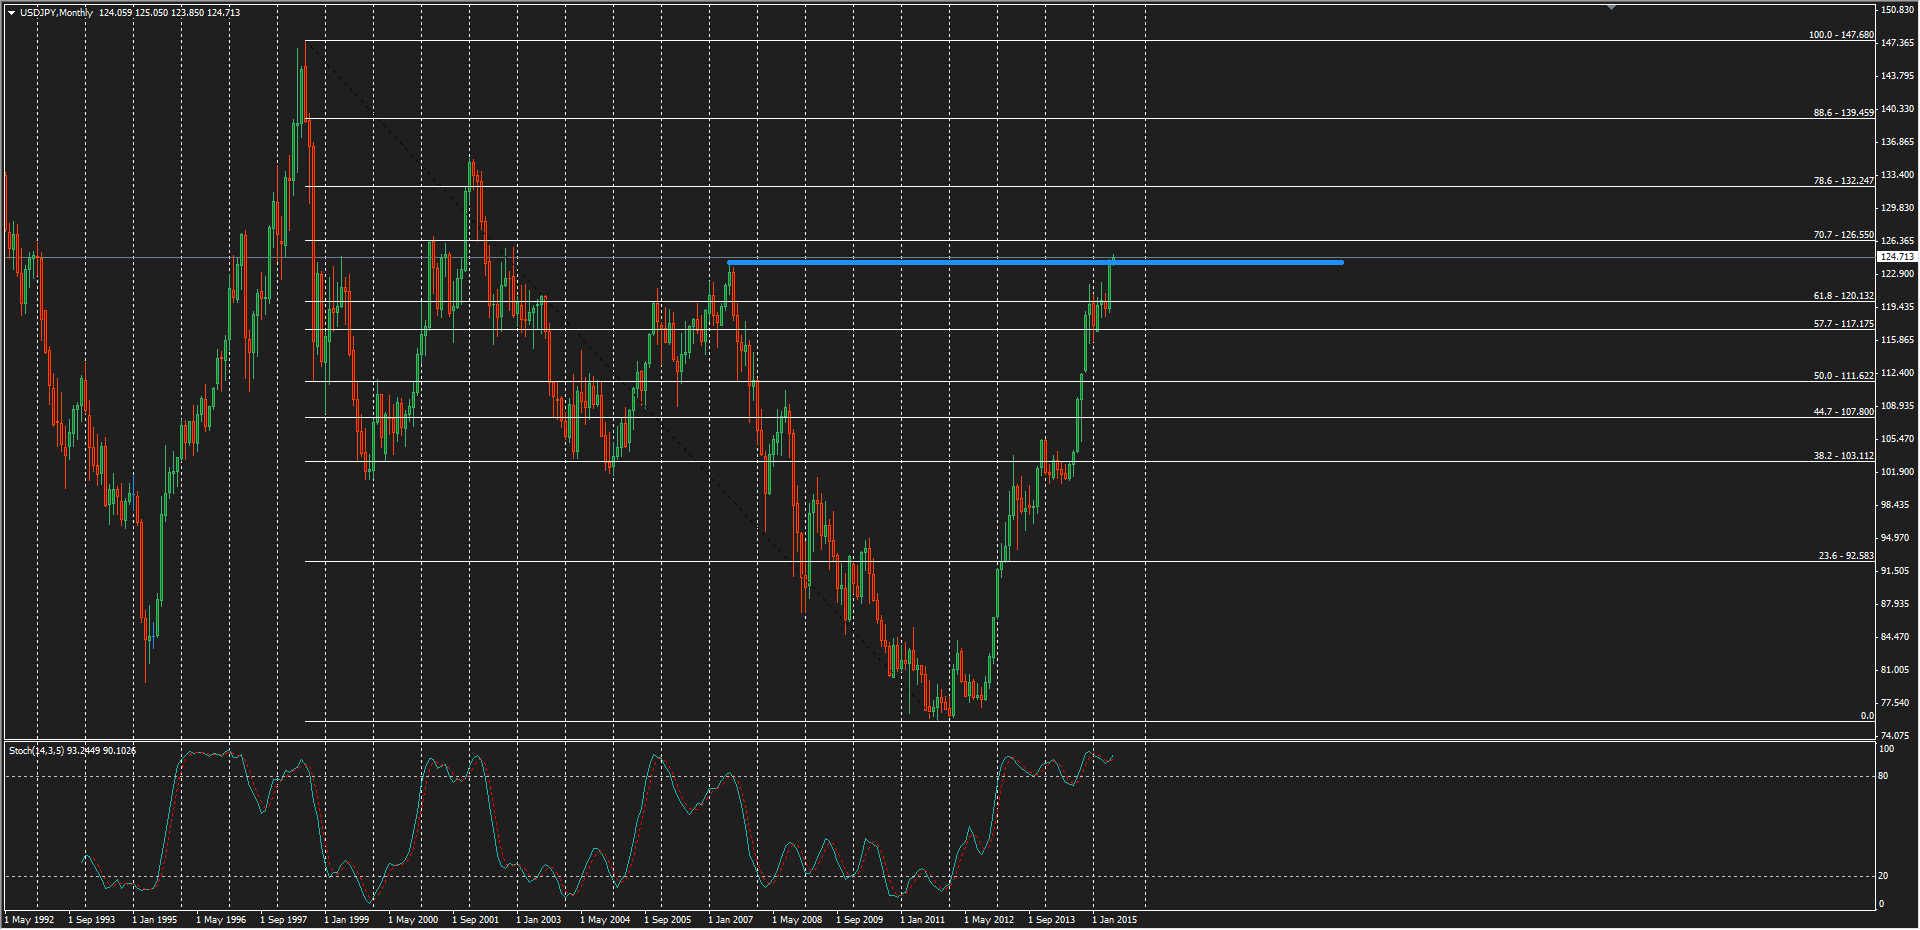 USD/JPY Monthly chart SOURCE: AXITrader MT4